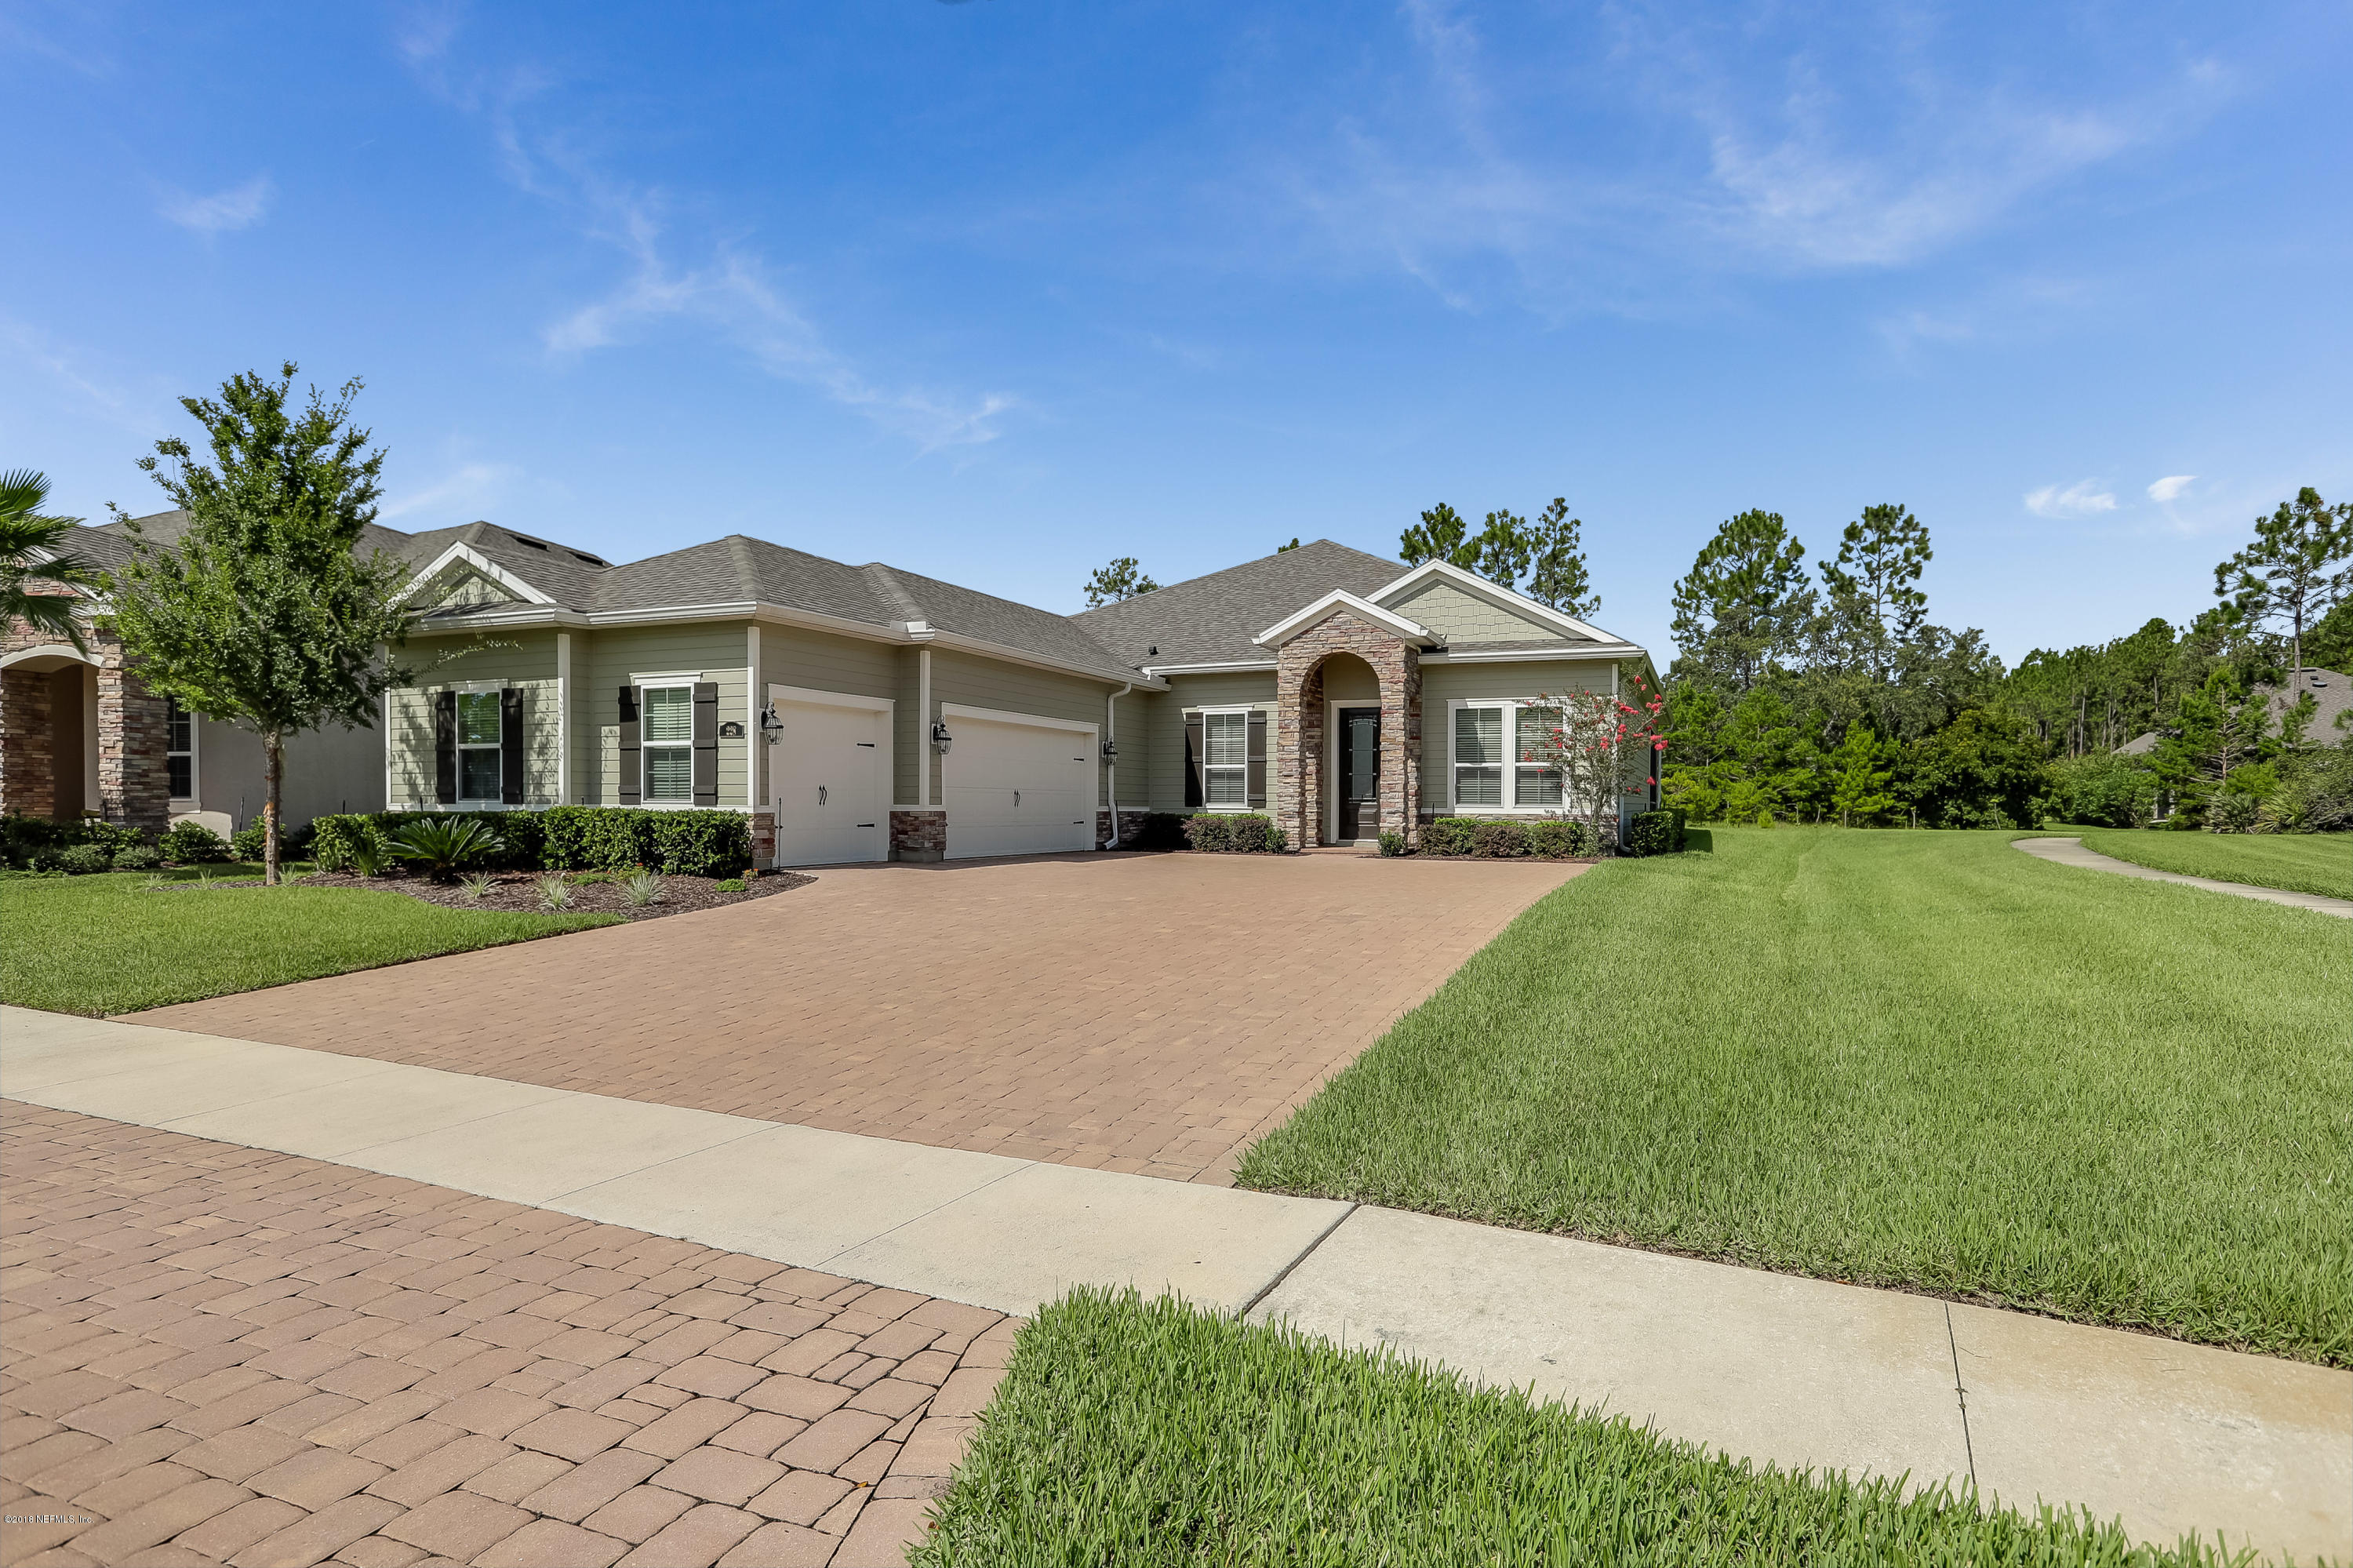 228 RINCON, ST AUGUSTINE, FLORIDA 32095, 4 Bedrooms Bedrooms, ,3 BathroomsBathrooms,Residential - single family,For sale,RINCON,950399